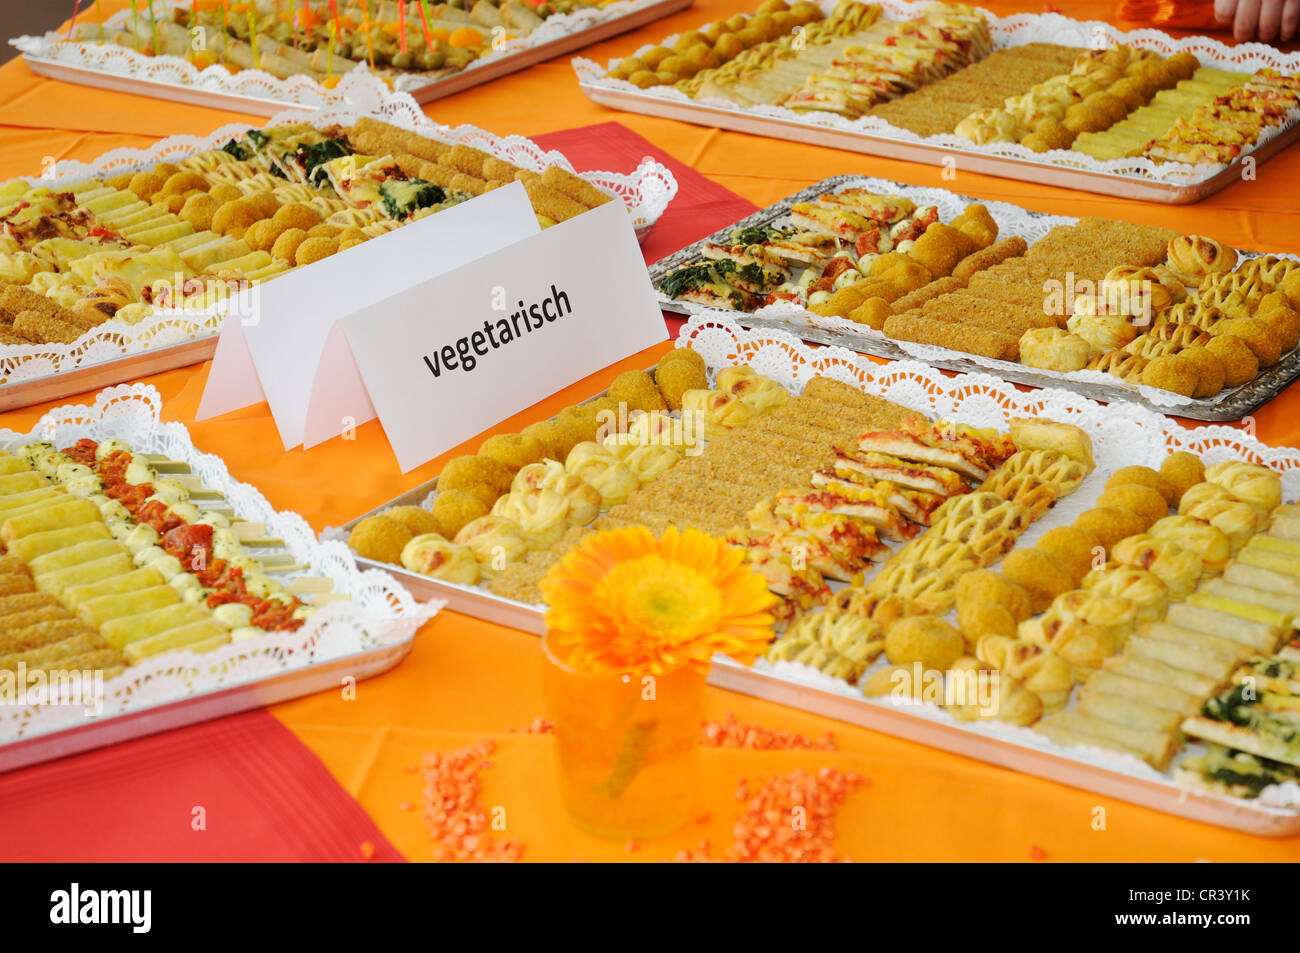 Canapés, appetizers, vegetarian buffet, catering - Stock Image